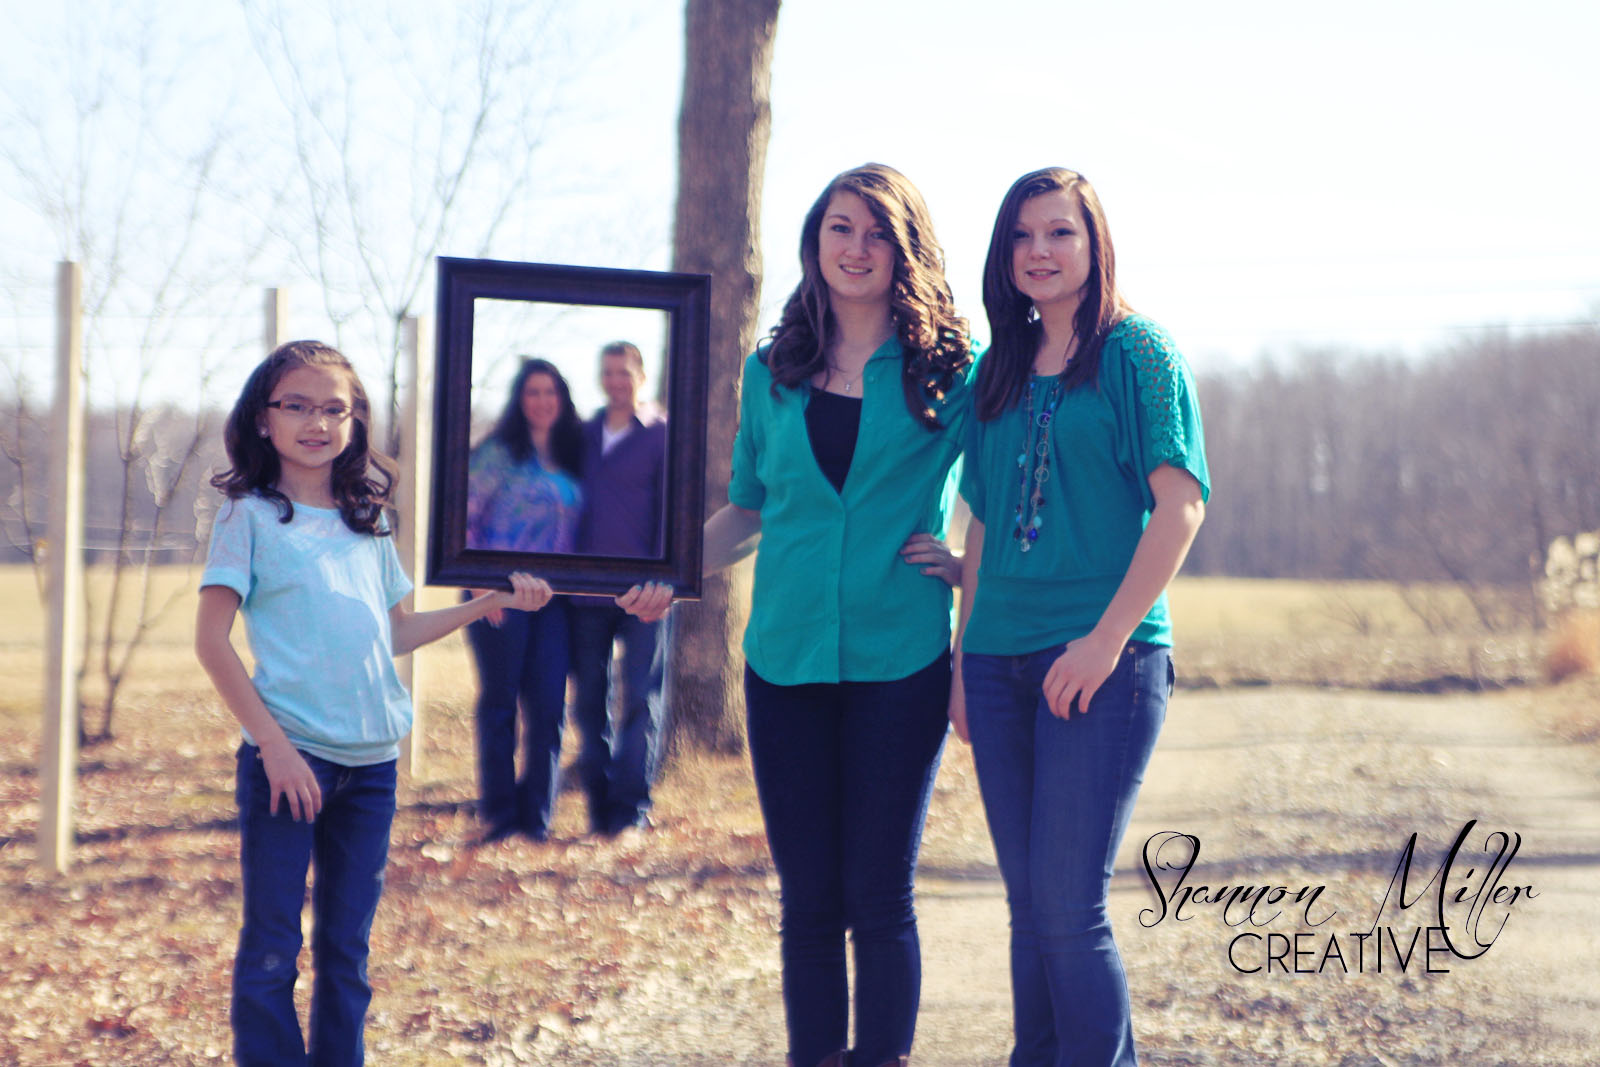 creative poses for large families  Shannon Miller Creative